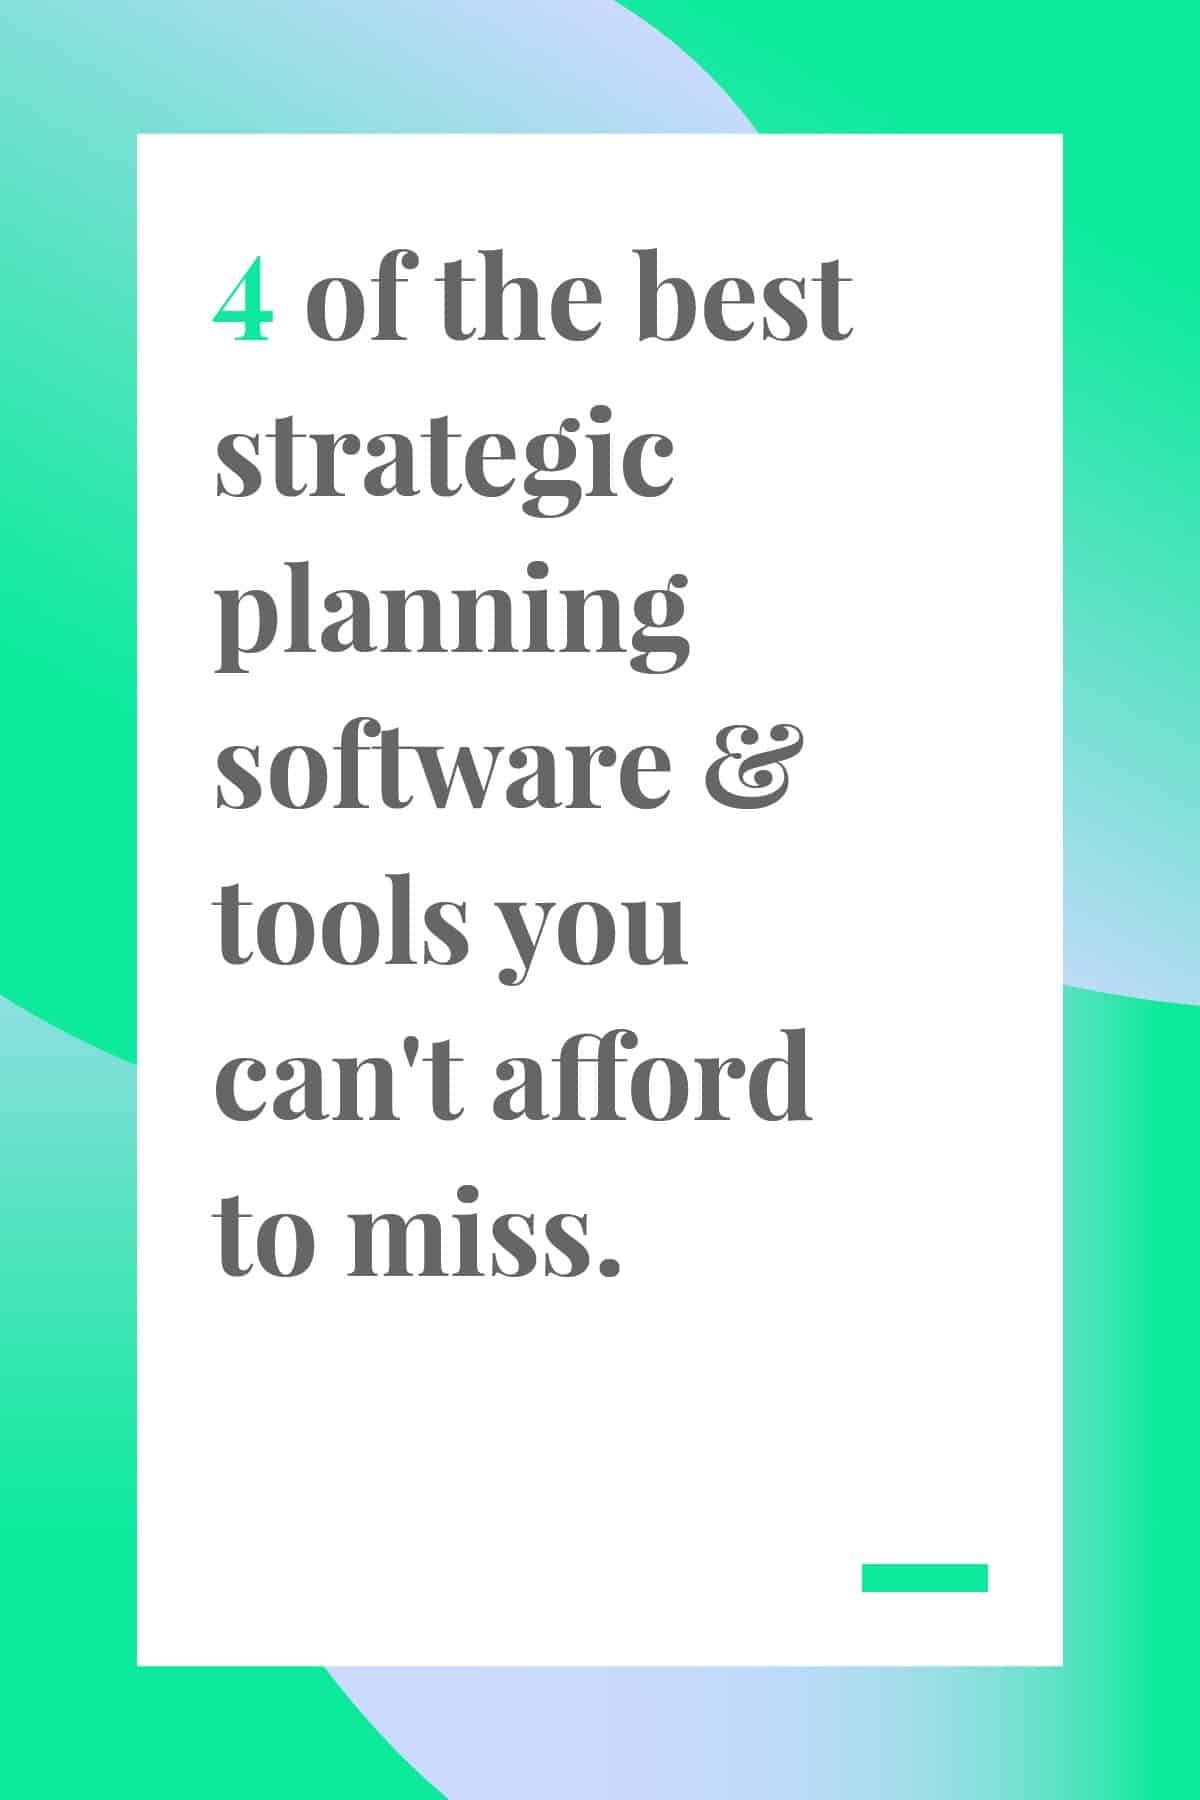 We've chosen the top strategic planning software and tools your team needs to reach its goals this year. Click through to find out what made the list. #teamwork #leadership